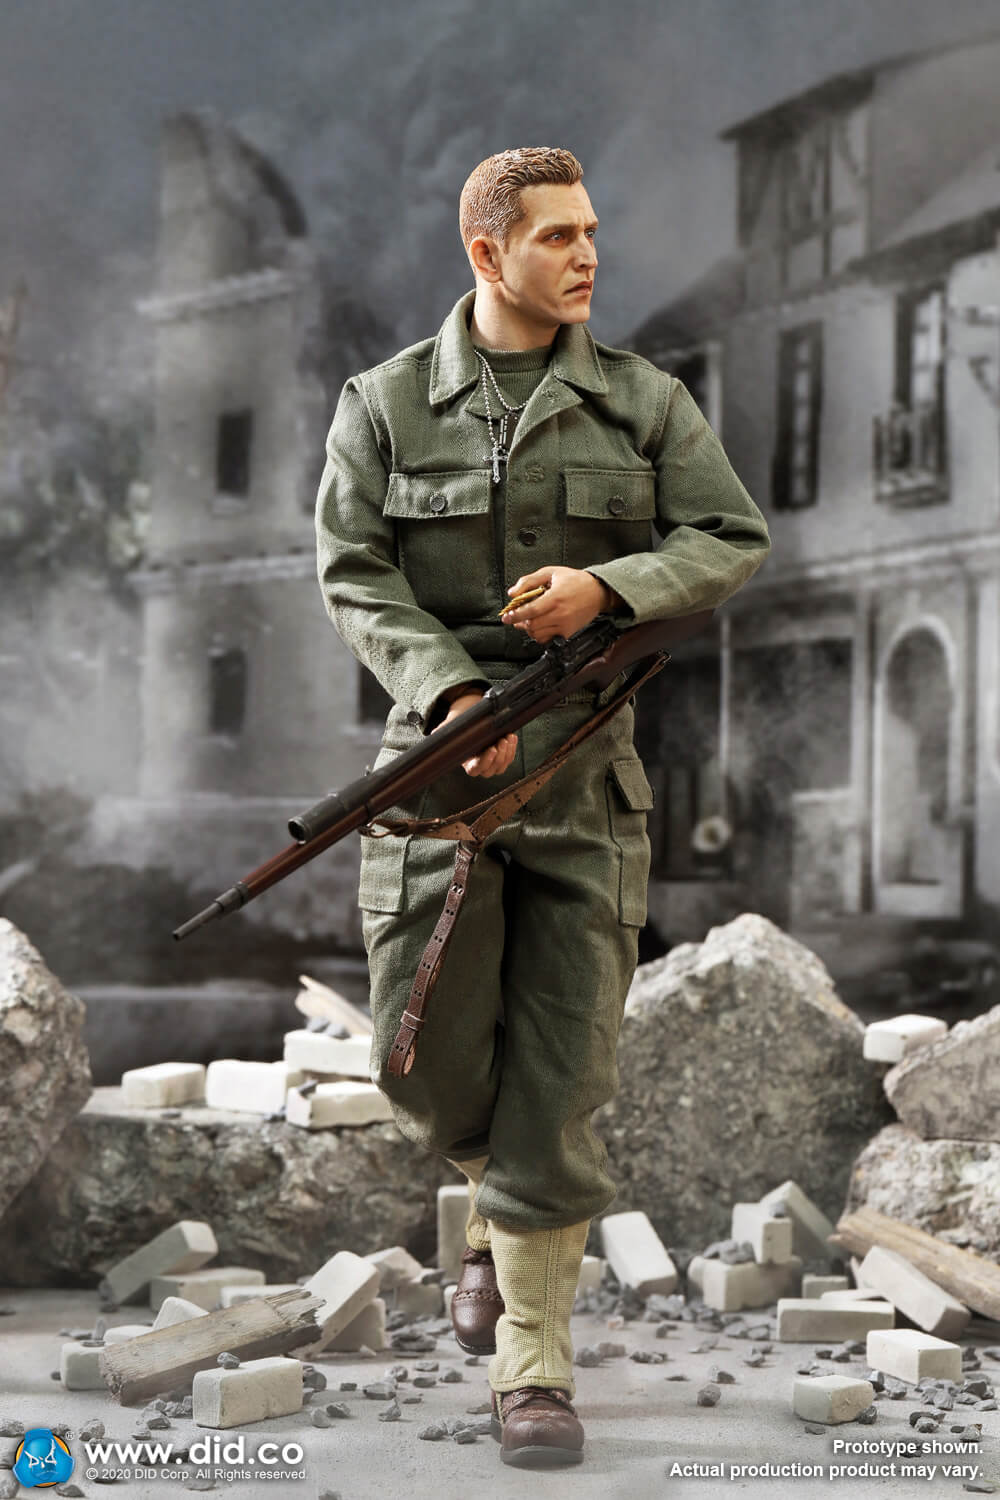 DiD - NEW PRODUCT: DiD: A80144 WWII US 2nd Ranger Battalion Series 4 Private Jackson 20138